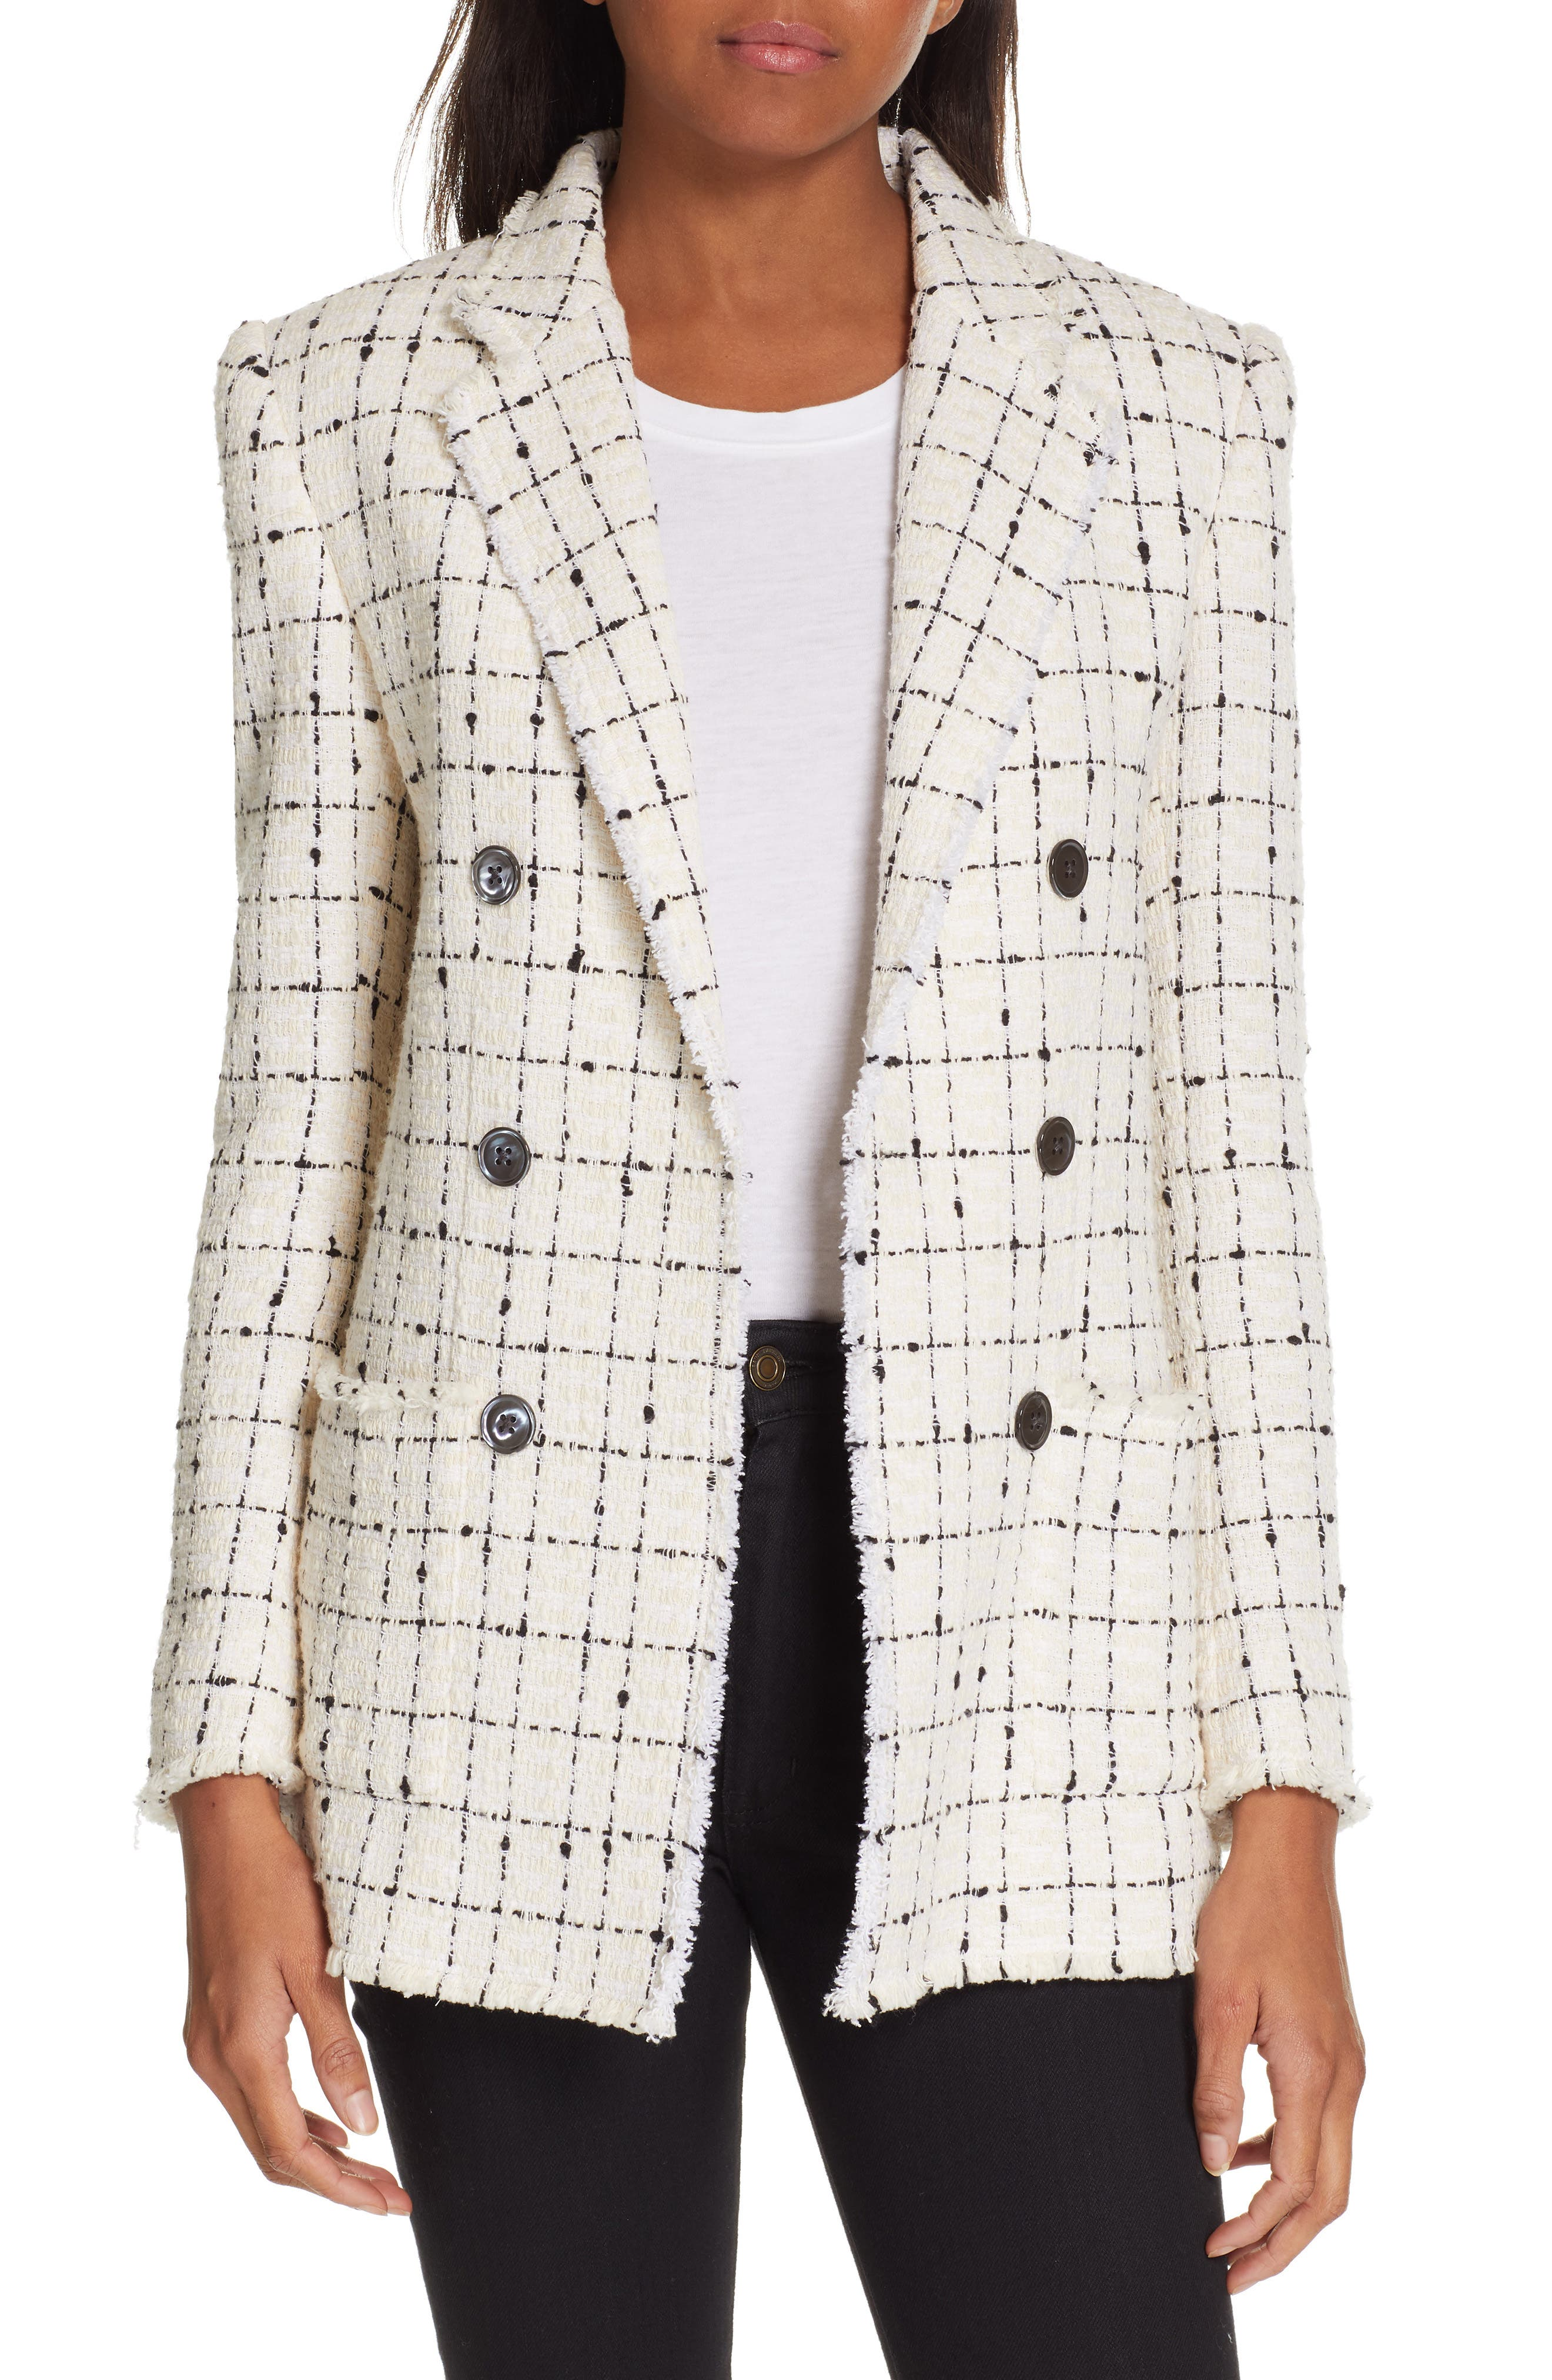 REBECCA TAYLOR, Windowpane Plaid Tweed Double-Breasted Blazer, Main thumbnail 1, color, 902